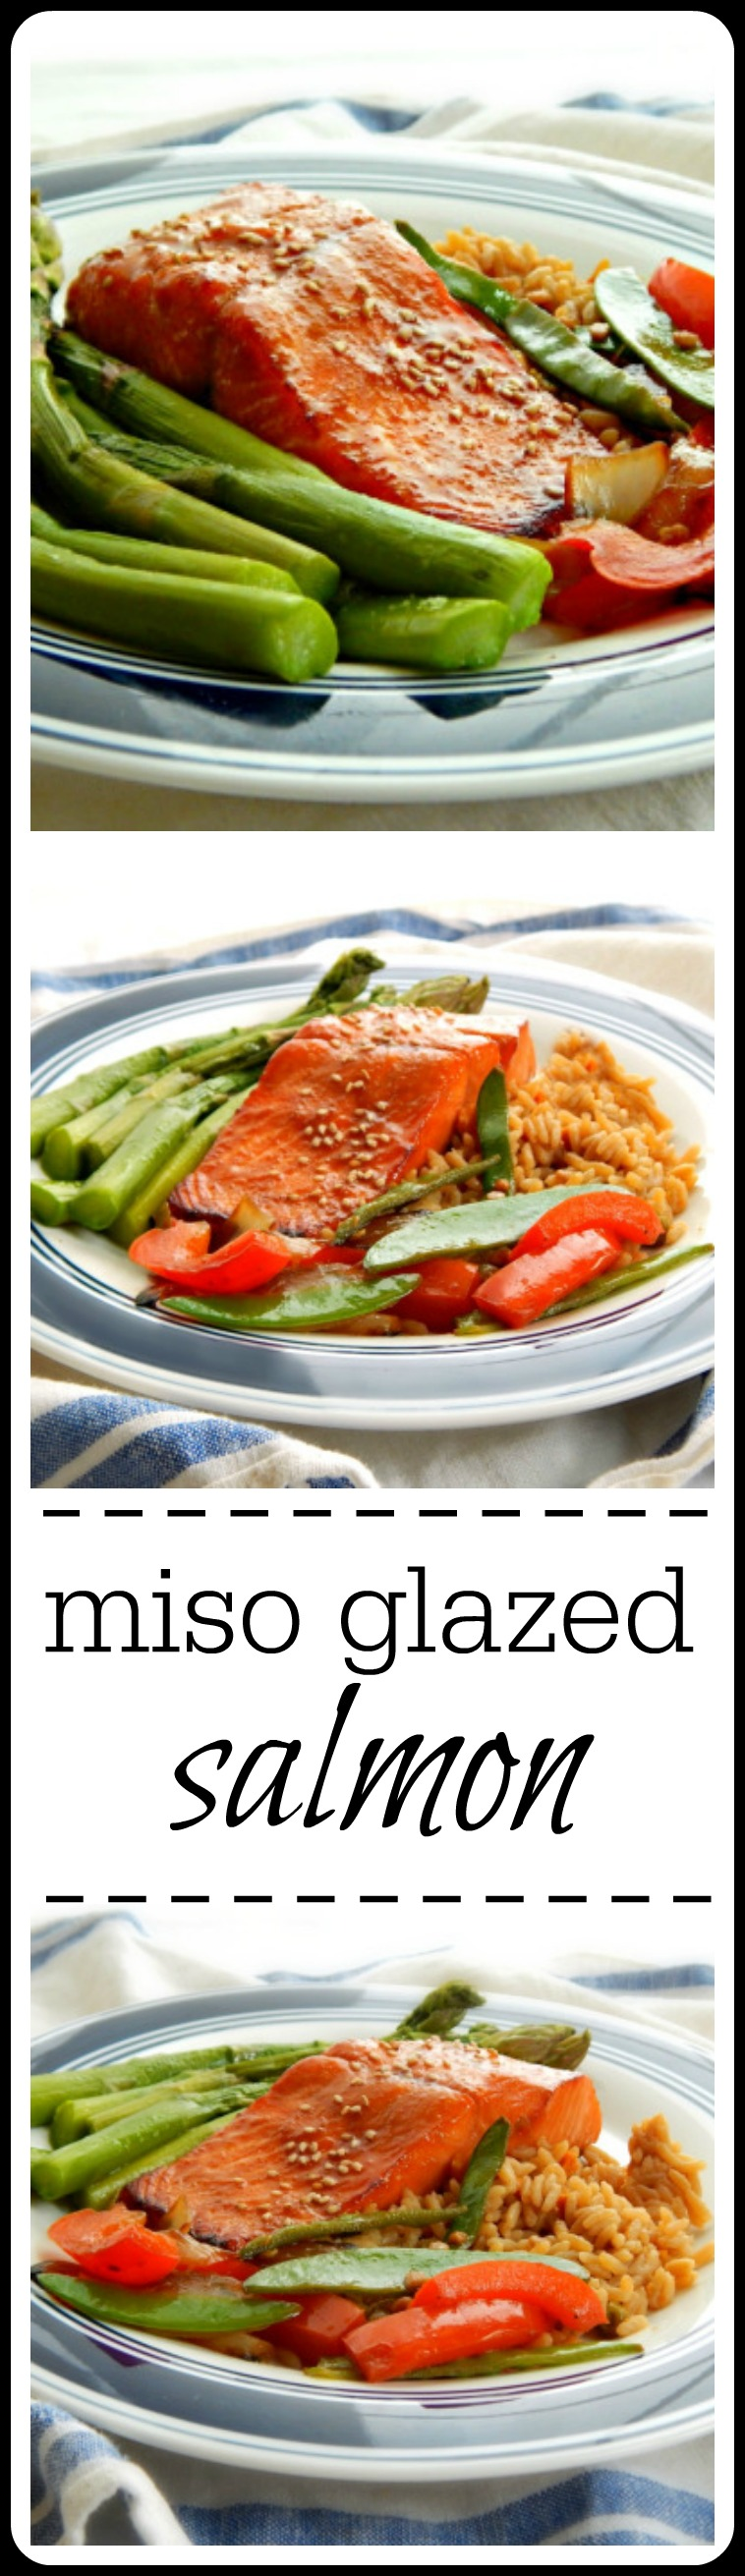 Miso Glazed Salmon - Super easy, super fast & Super tasty! Have a healthy dinner on the table in minutes! #MisoGlazedSalmon #MisoSalmon